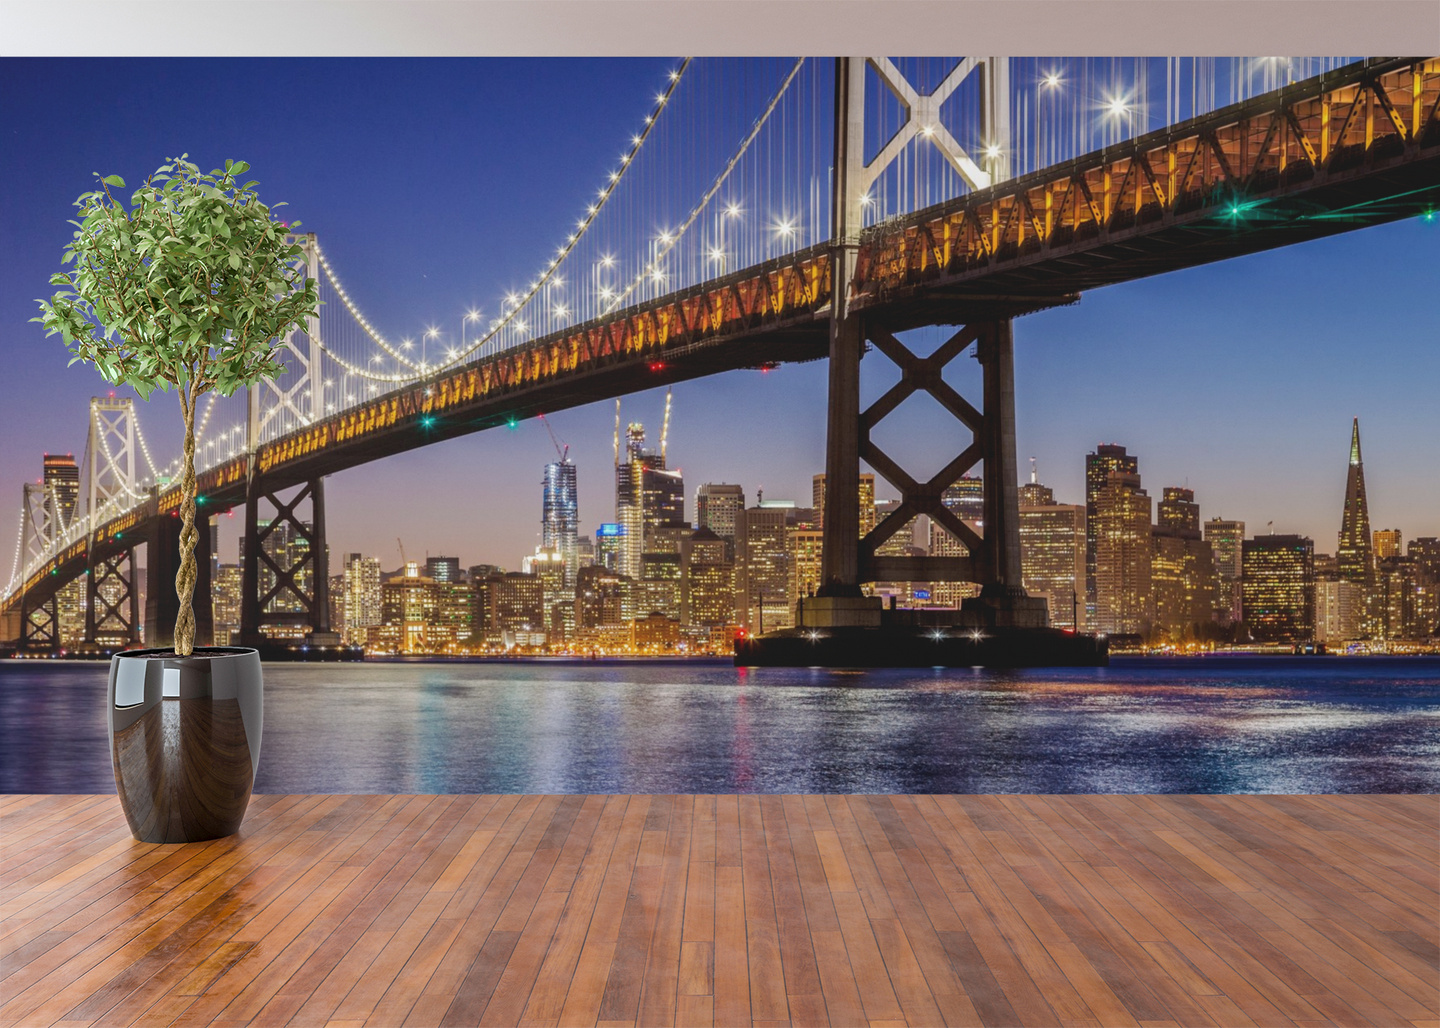 Bridge at Night  - 01154 - Wall Murals Printing - wall art